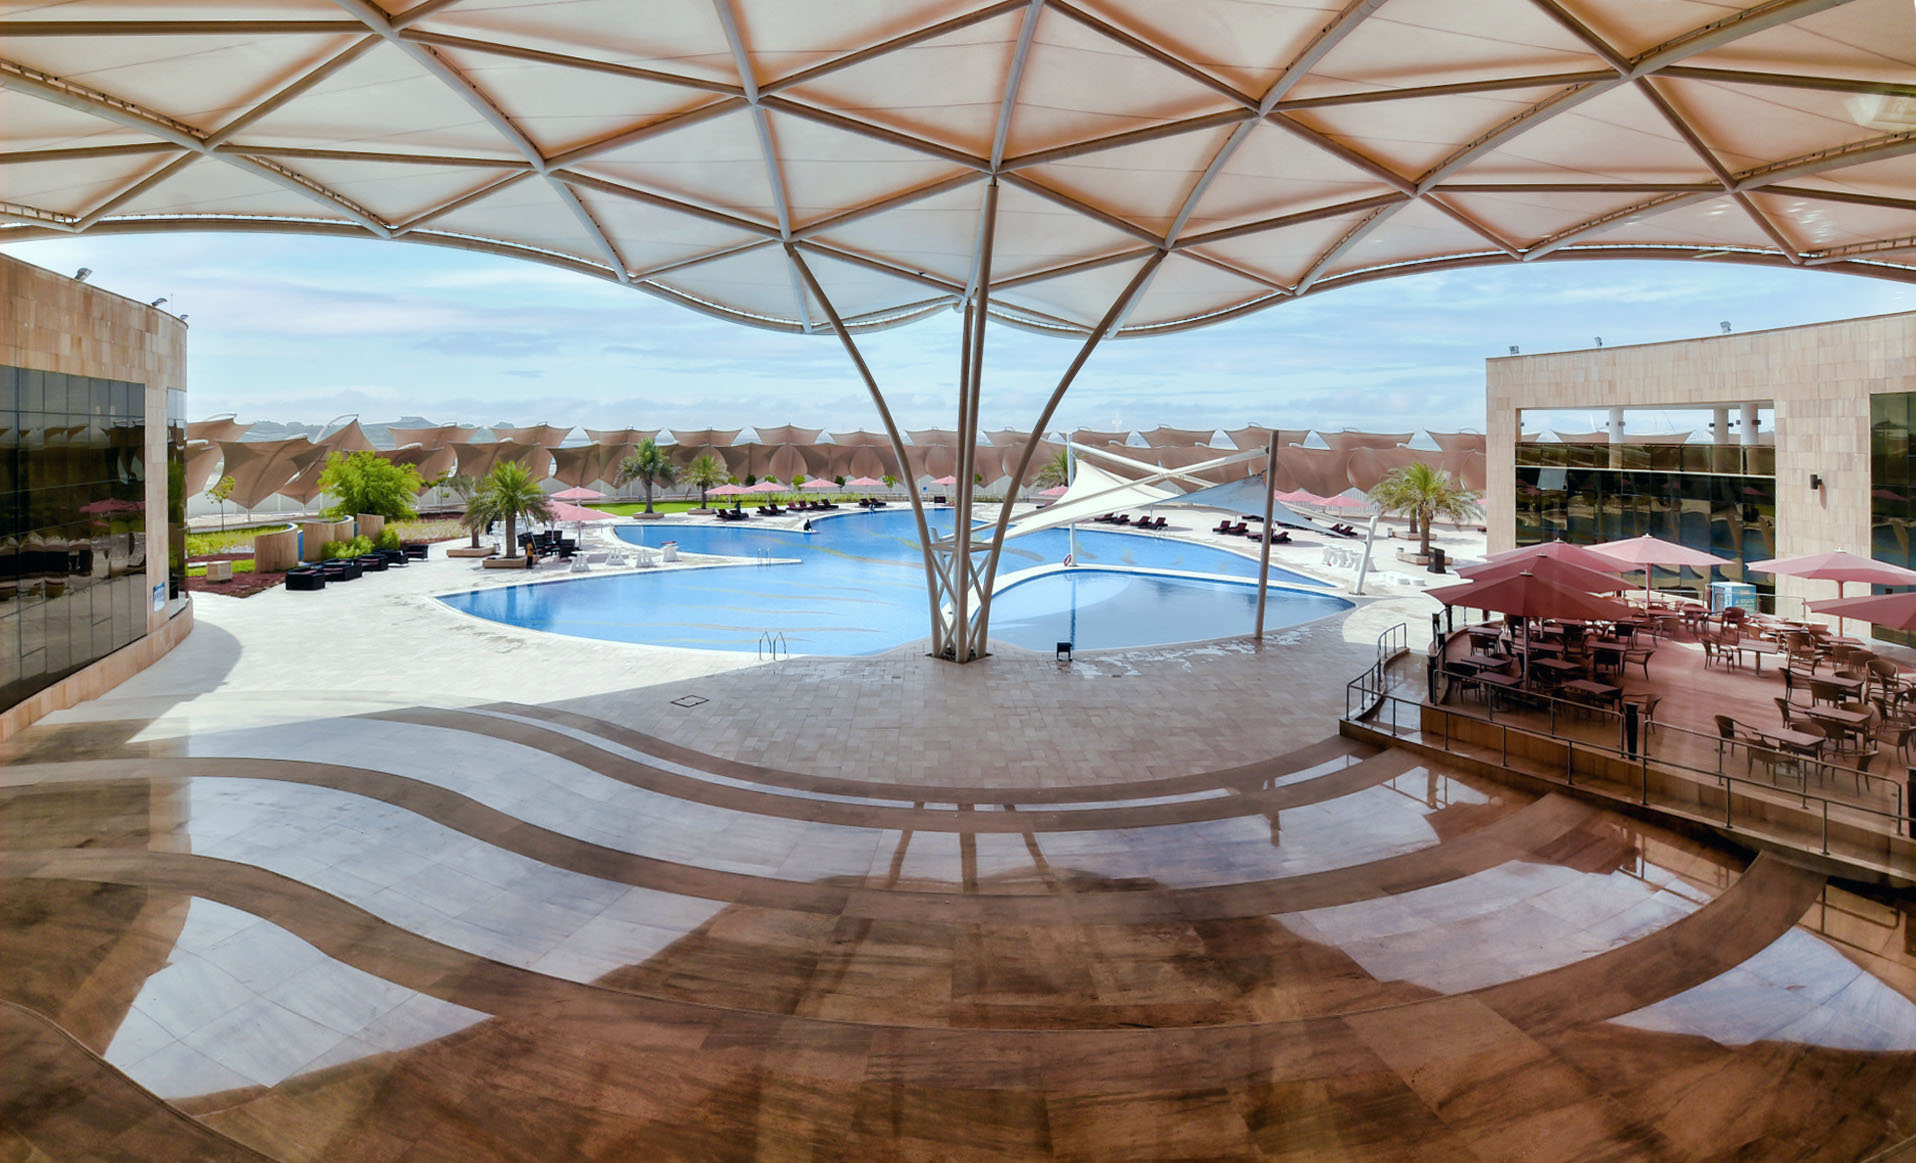 Abu Dhabi Ladies Club External Pool 3